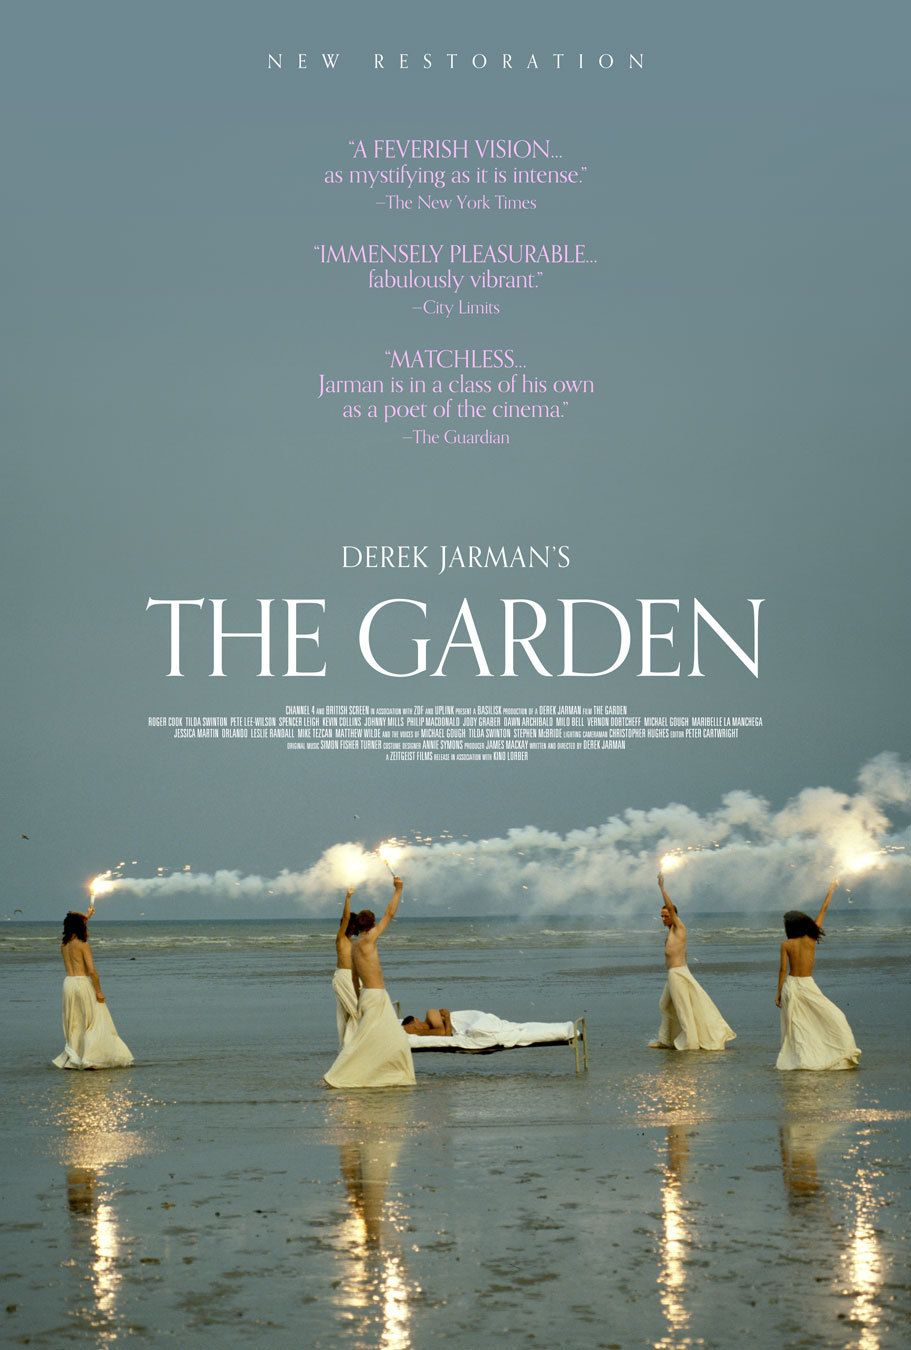 US rerelease one sheet for THE GARDEN (Derek Jarman, UK